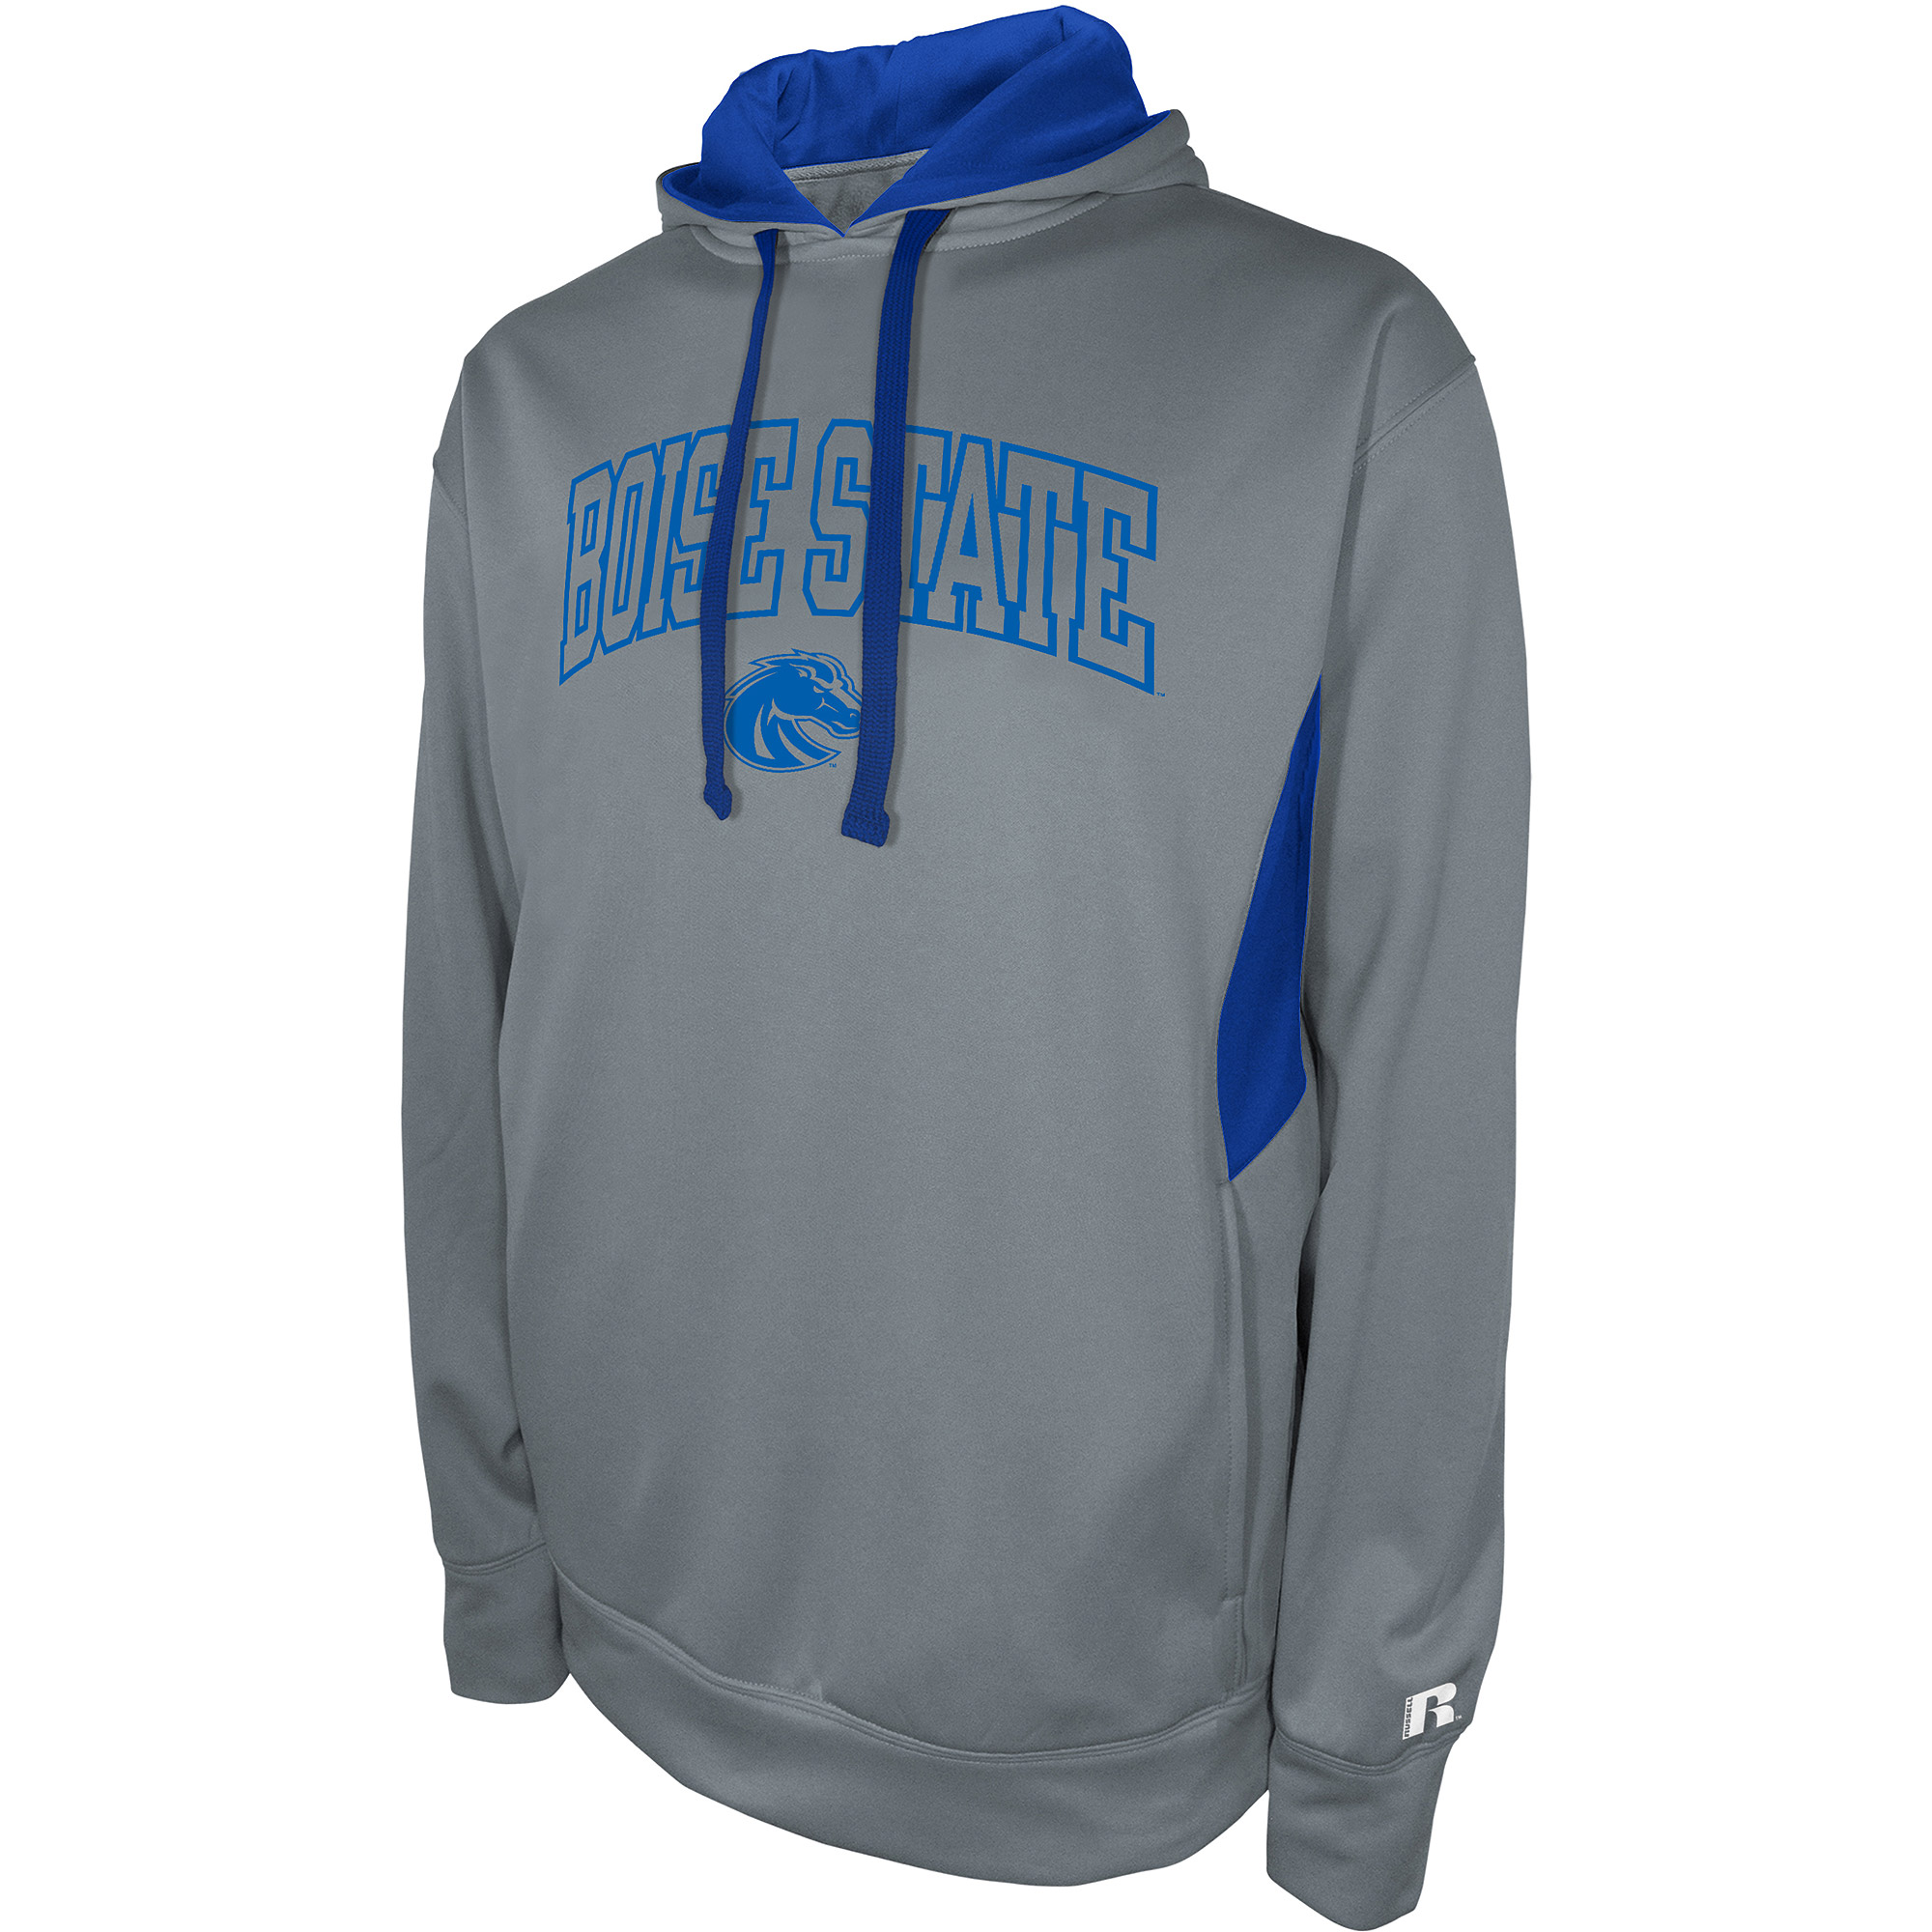 Russell NCAA Boise State Broncos, Men's Pullover